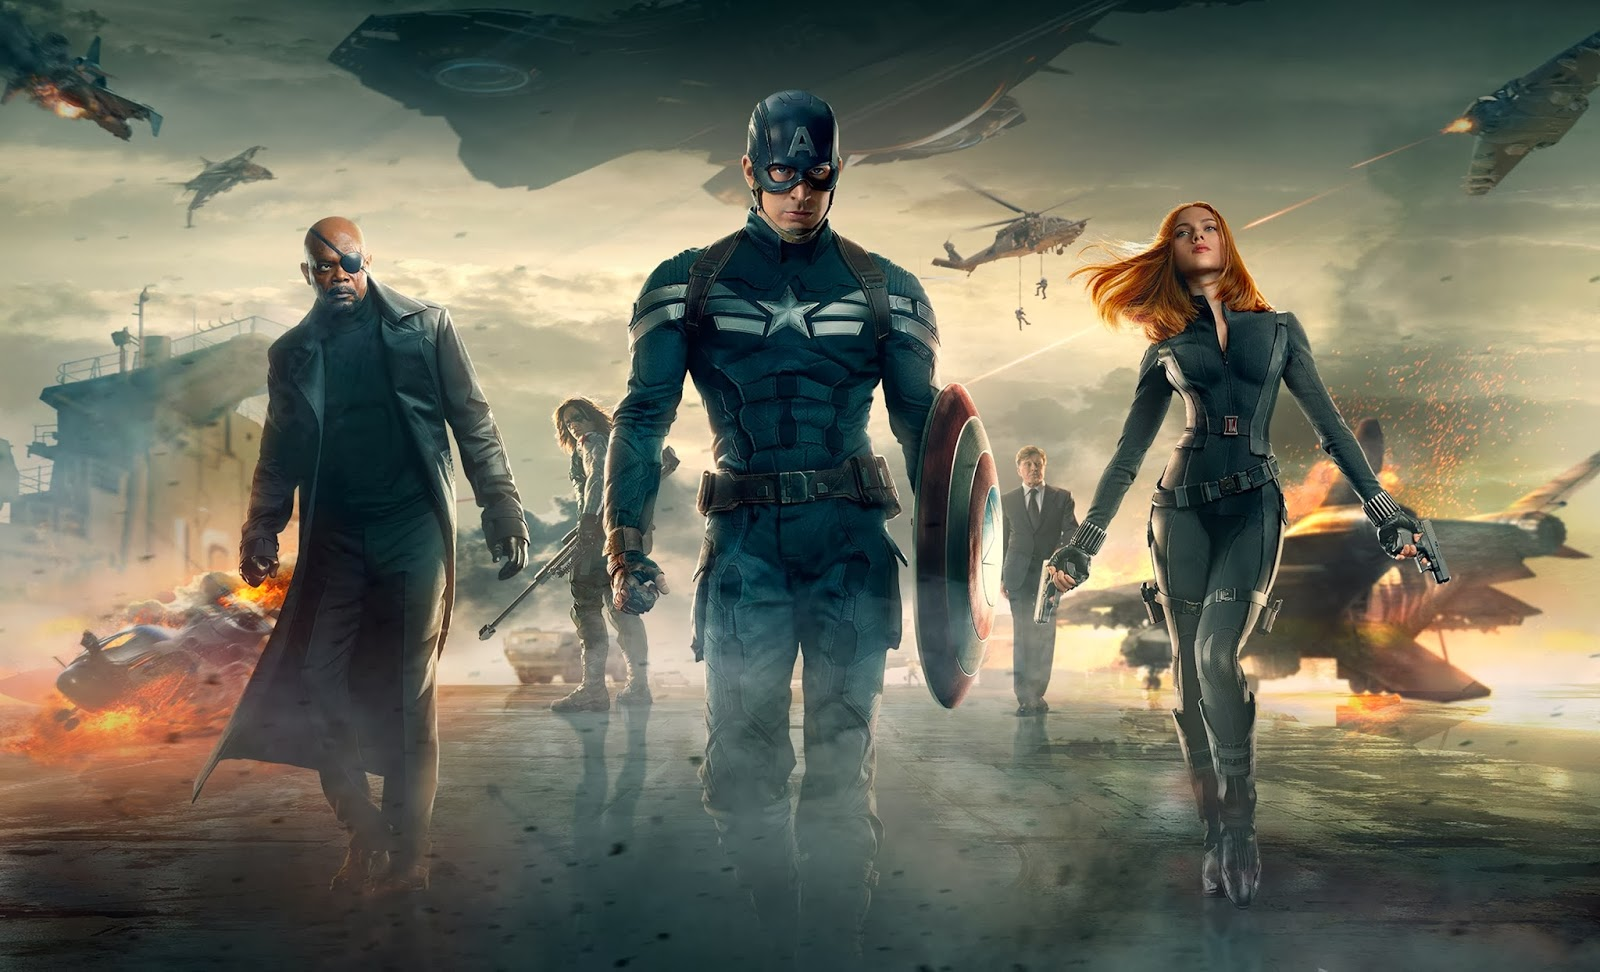 Captain-America-The-Winter-Soldier-textless-banner